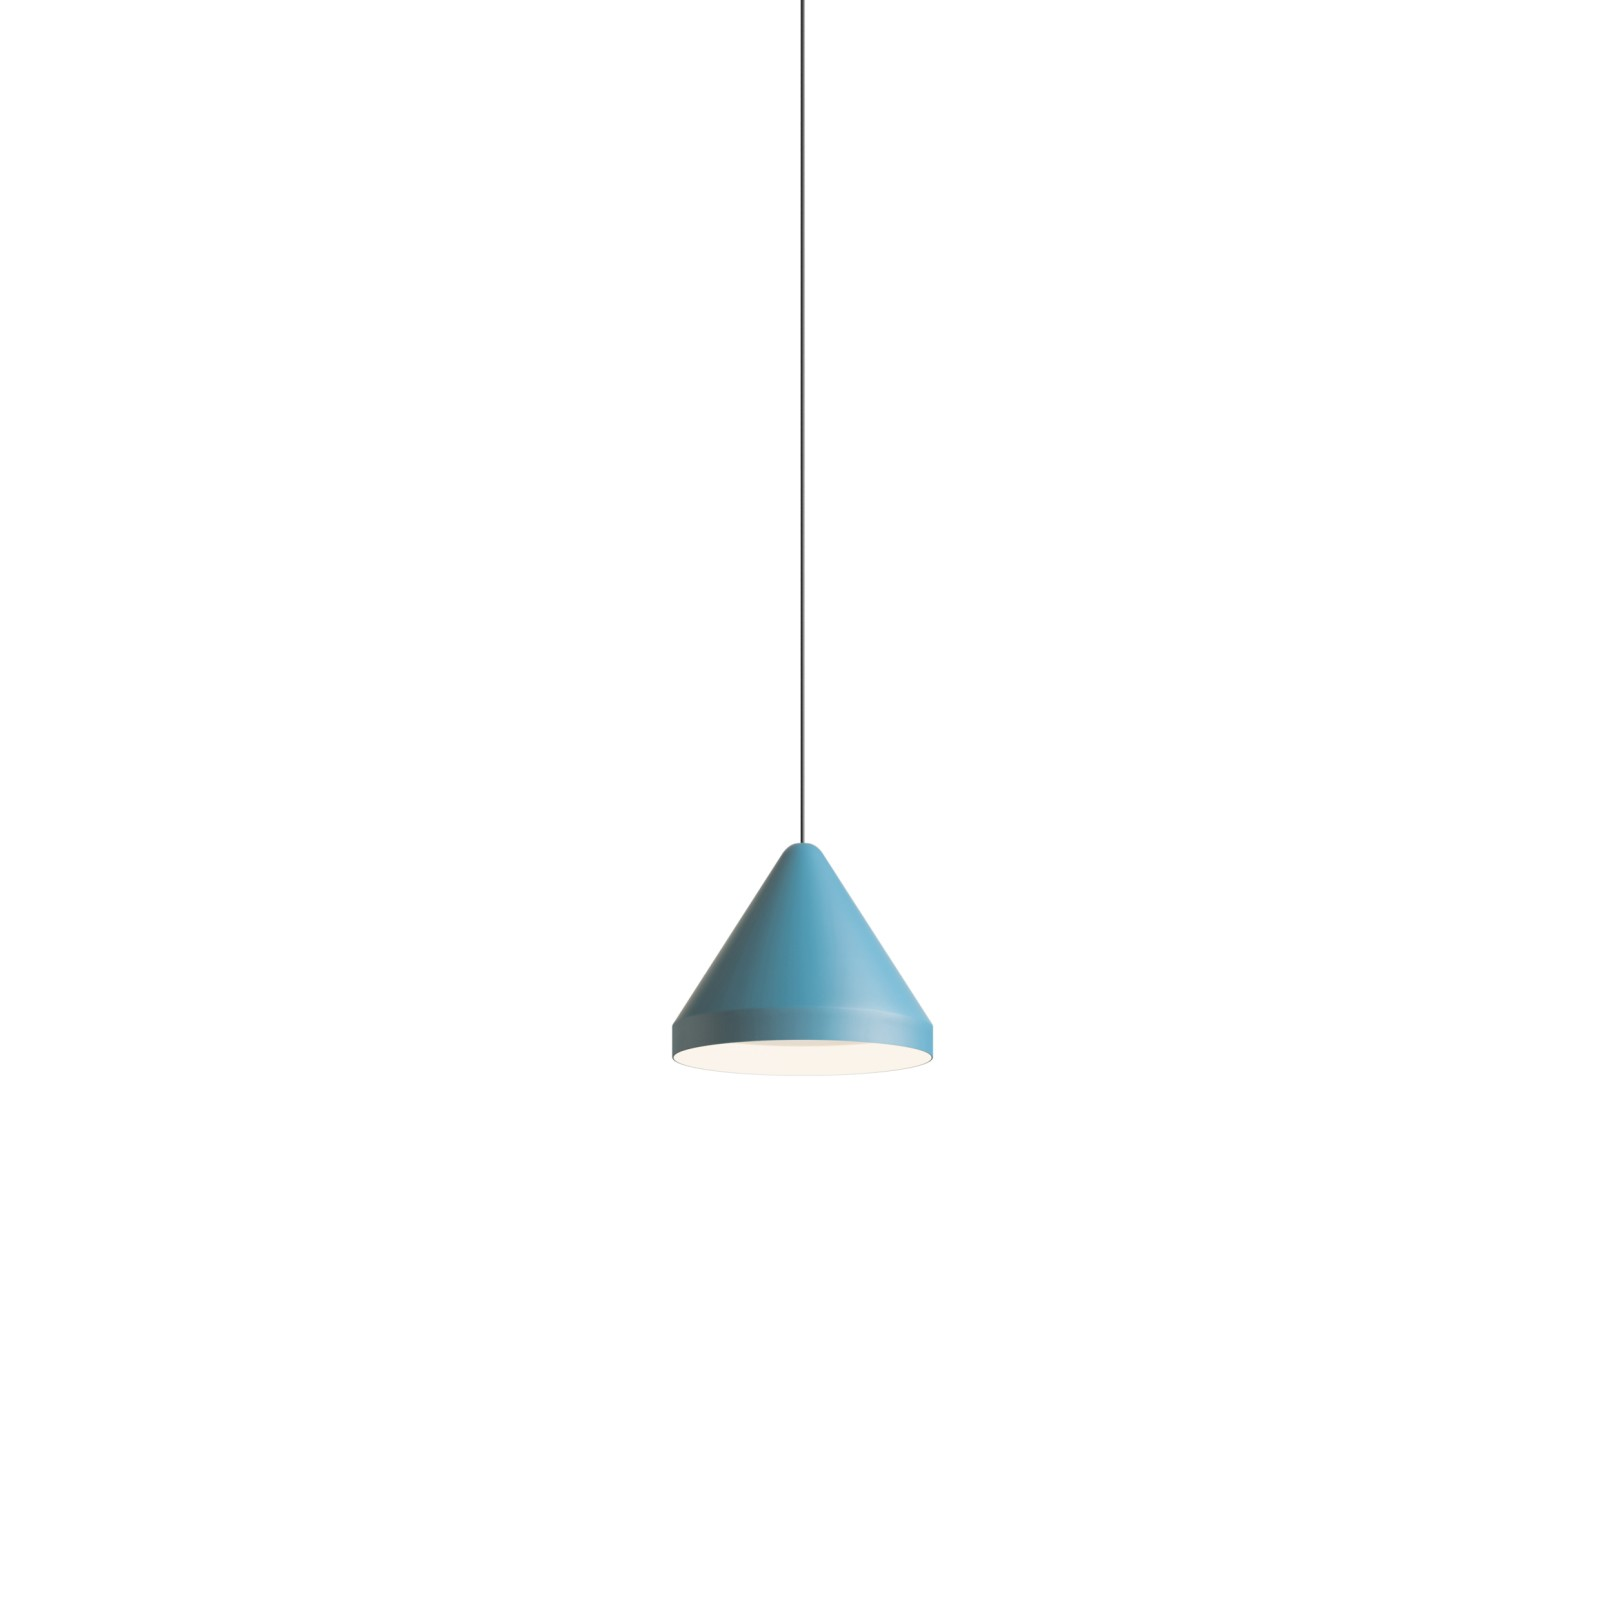 North Pendant Light Matt Blue Lacquer, 16.5cm